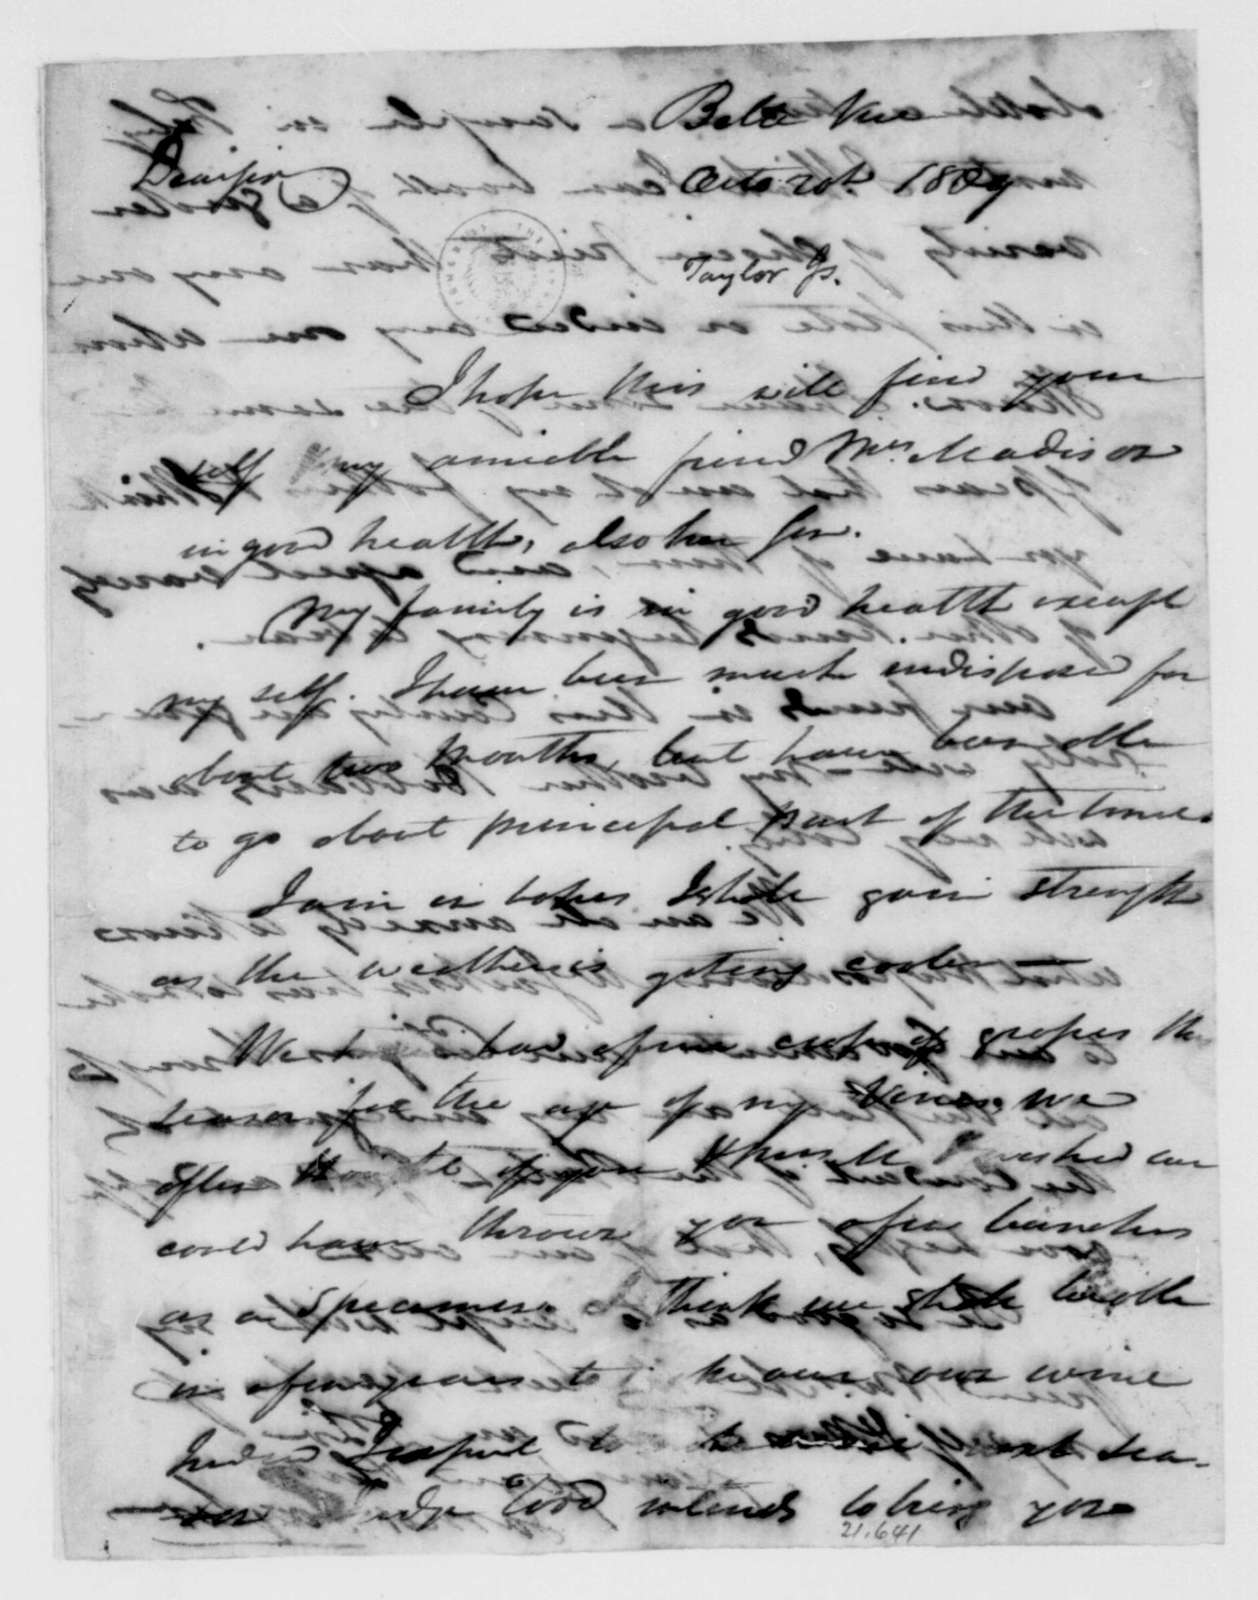 James Taylor to James Madison, October 20, 1809.